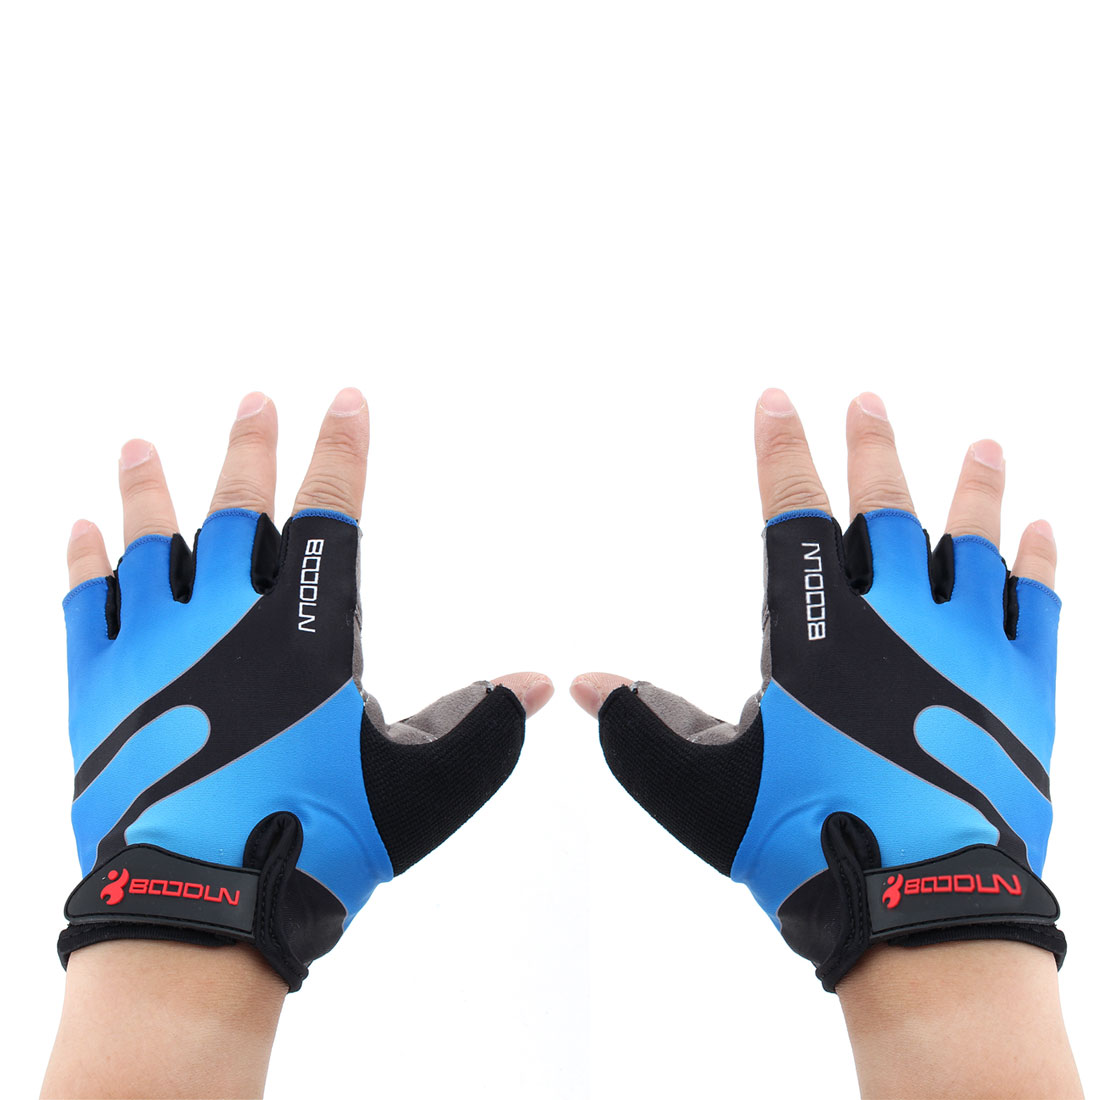 BOODUN Authorized Polyester Exercise Sports Lifting Training Bodybuilding Wrist Protector Half Finger Fitness Gloves Blue XL Pair